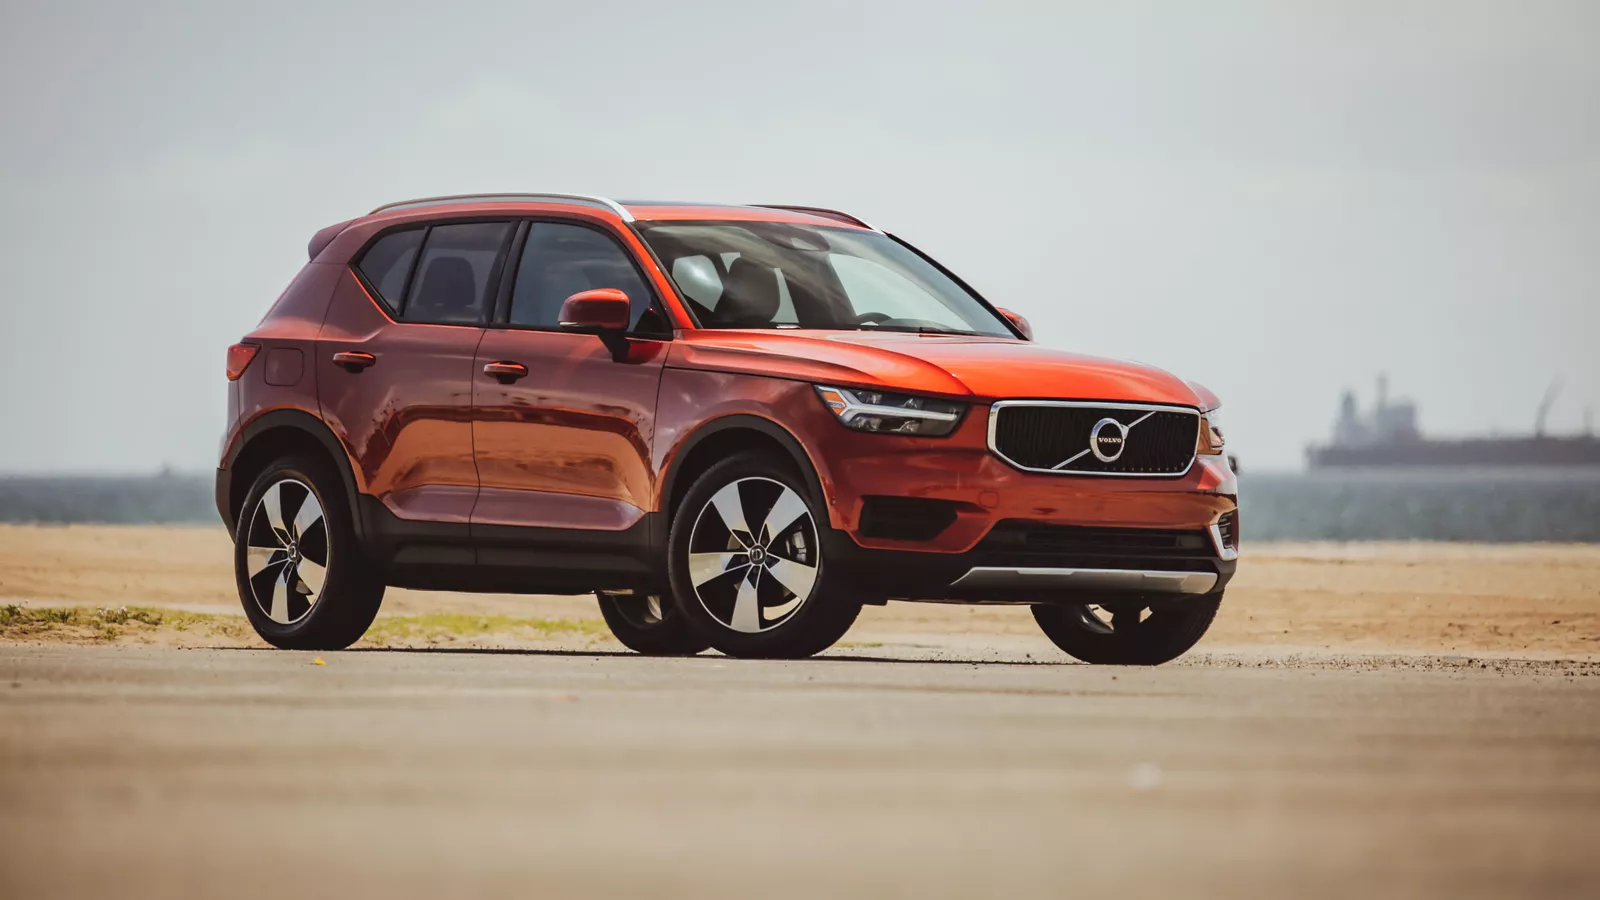 Image result for Best SUV: Best Crossovers SUV in 2019